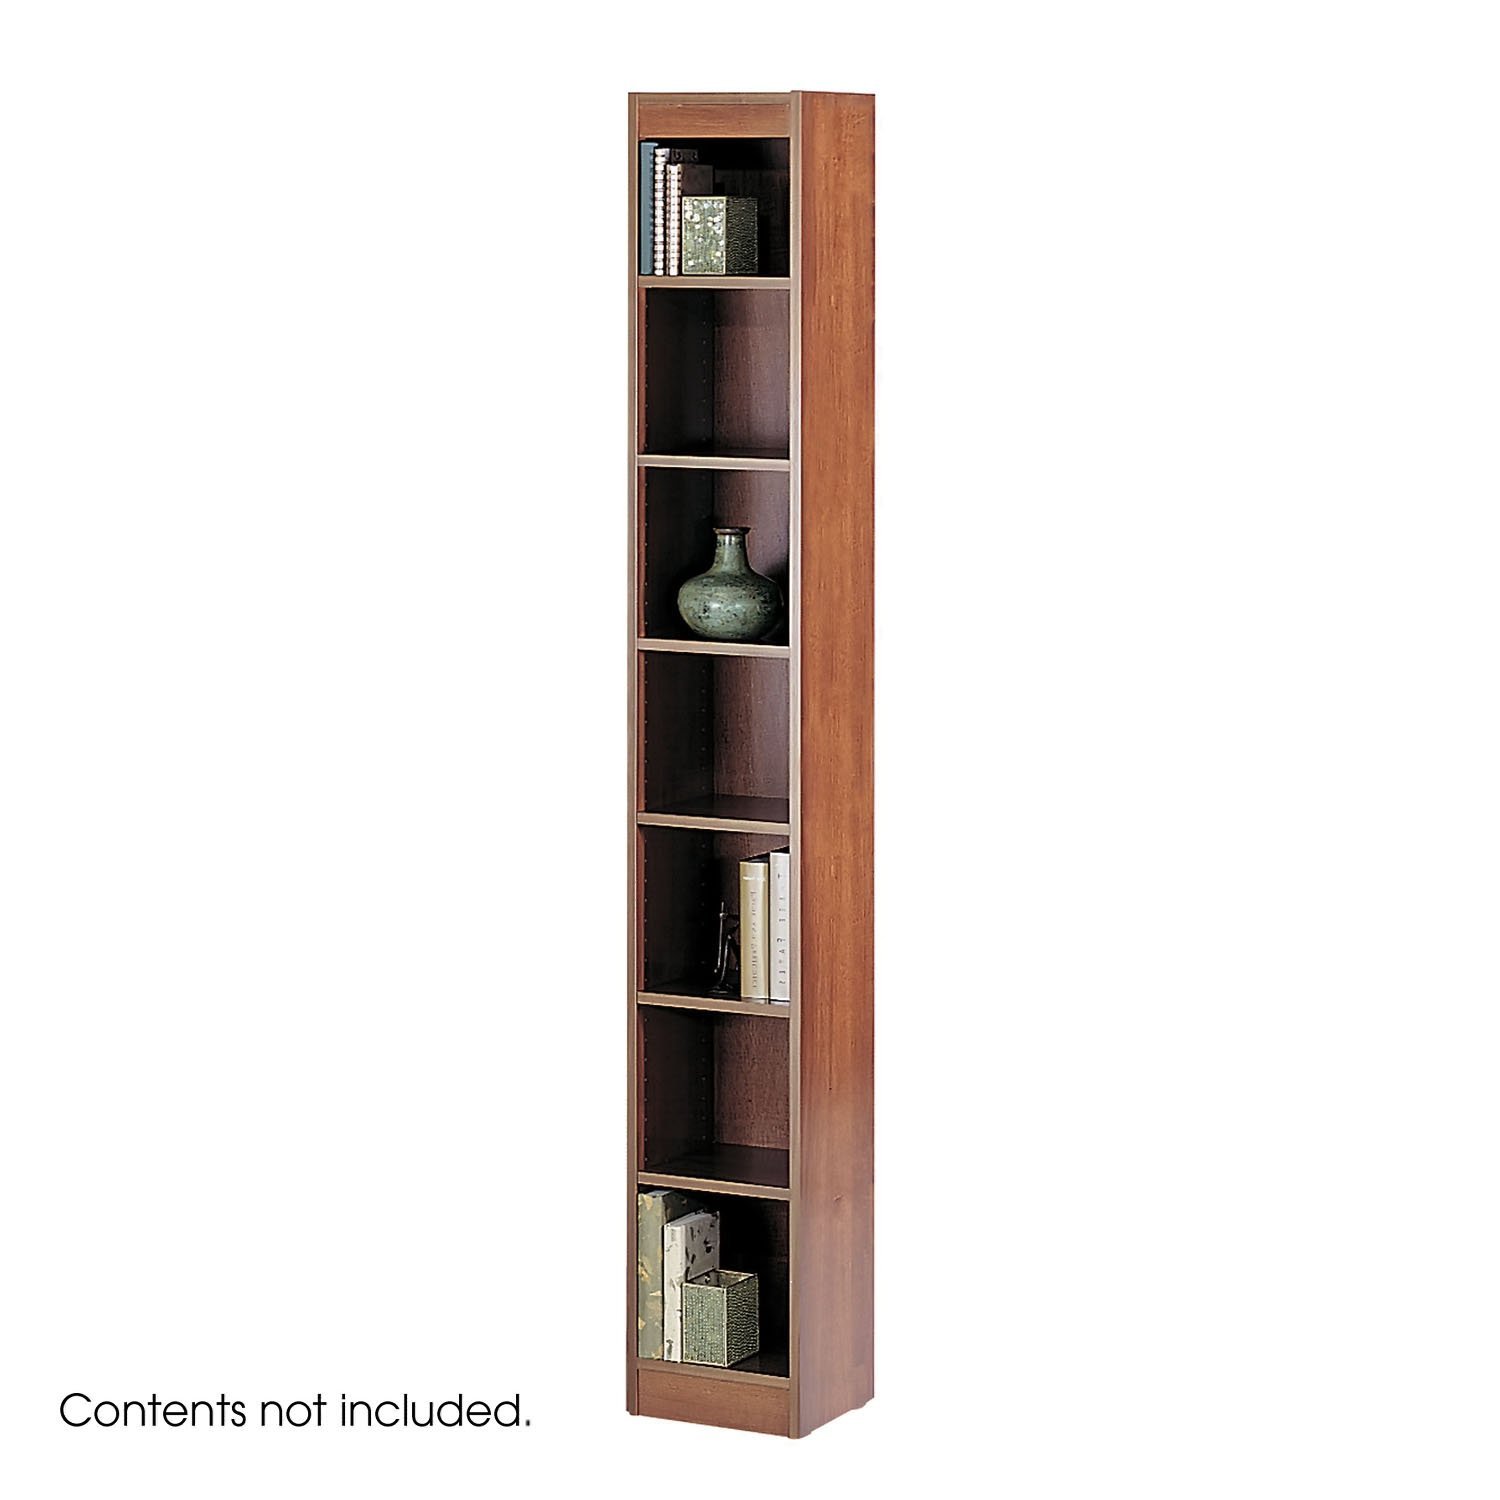 open deep wood inch suitable thrilling clubmona cabinet bookshelf size tal peacock full momentous enjoyable lovely stunning tall bookcases property bookcase uncategorized back amiable of cool brown cherry carved home design high ideas cute